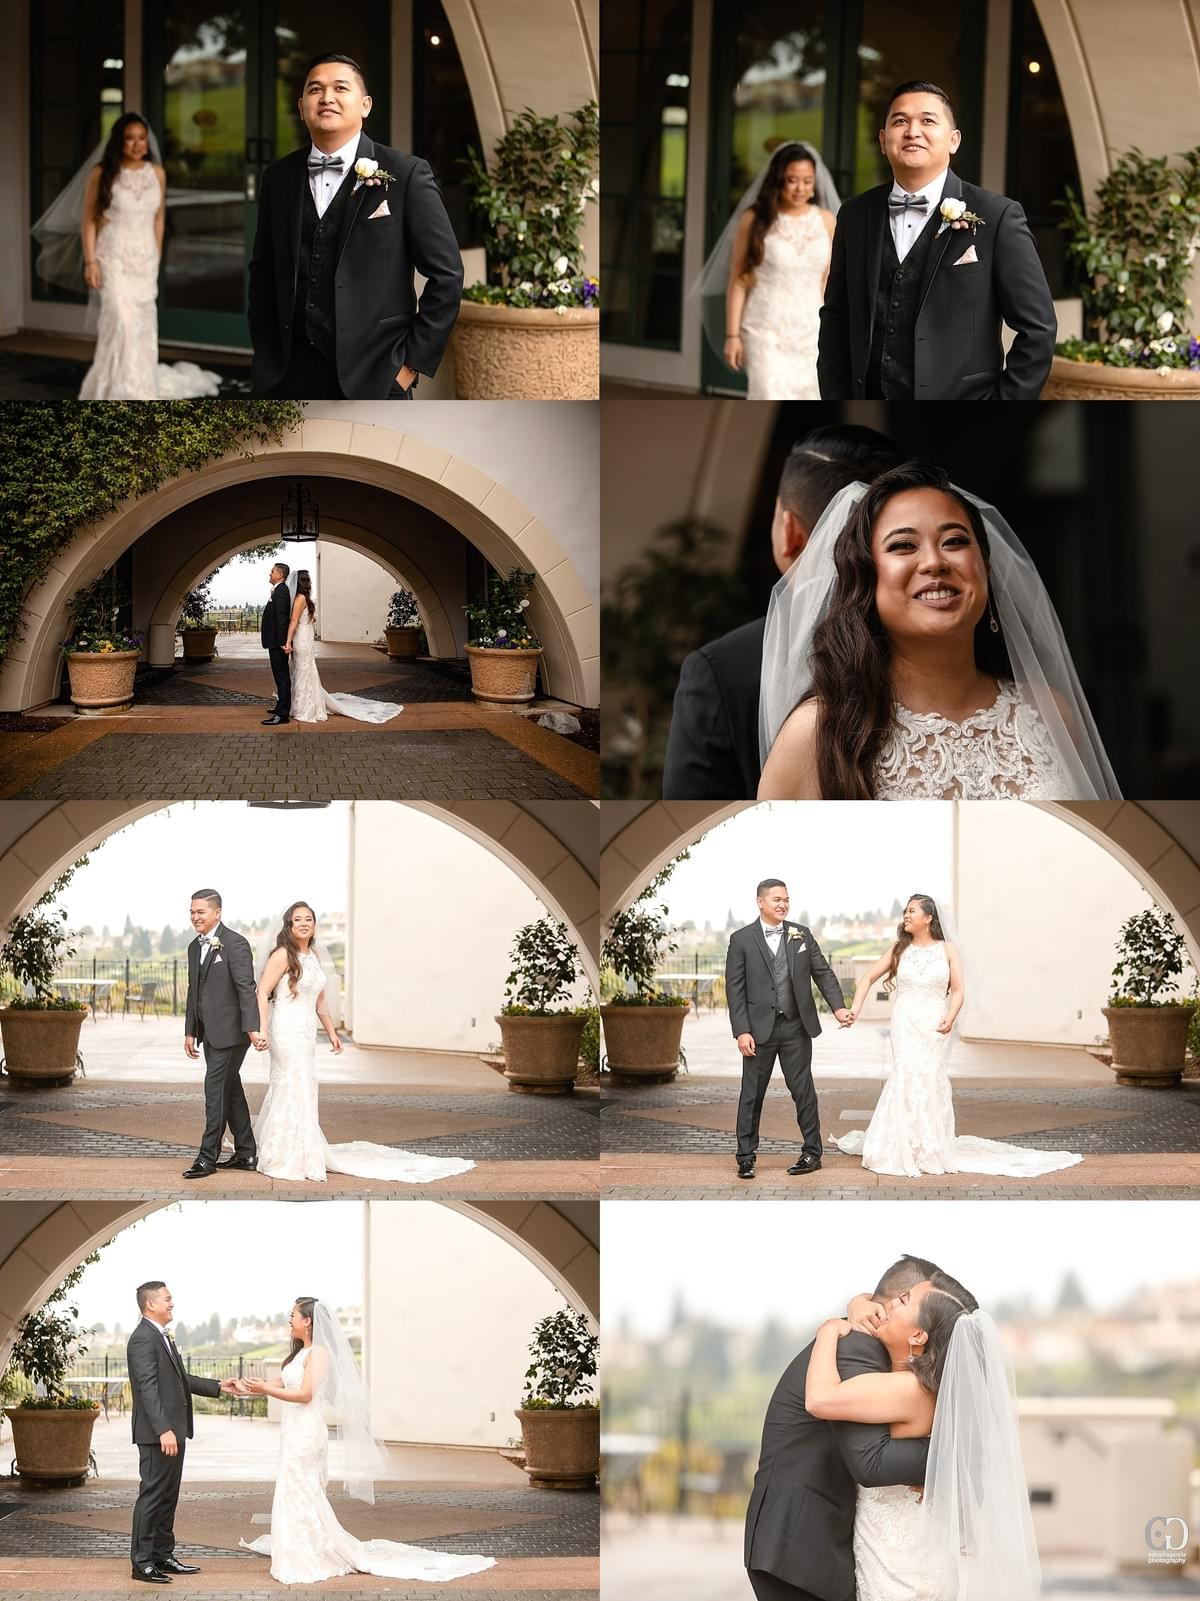 bridges golf club wedding san ramon photographer bride and groom first look arches filipino cambodian wedding